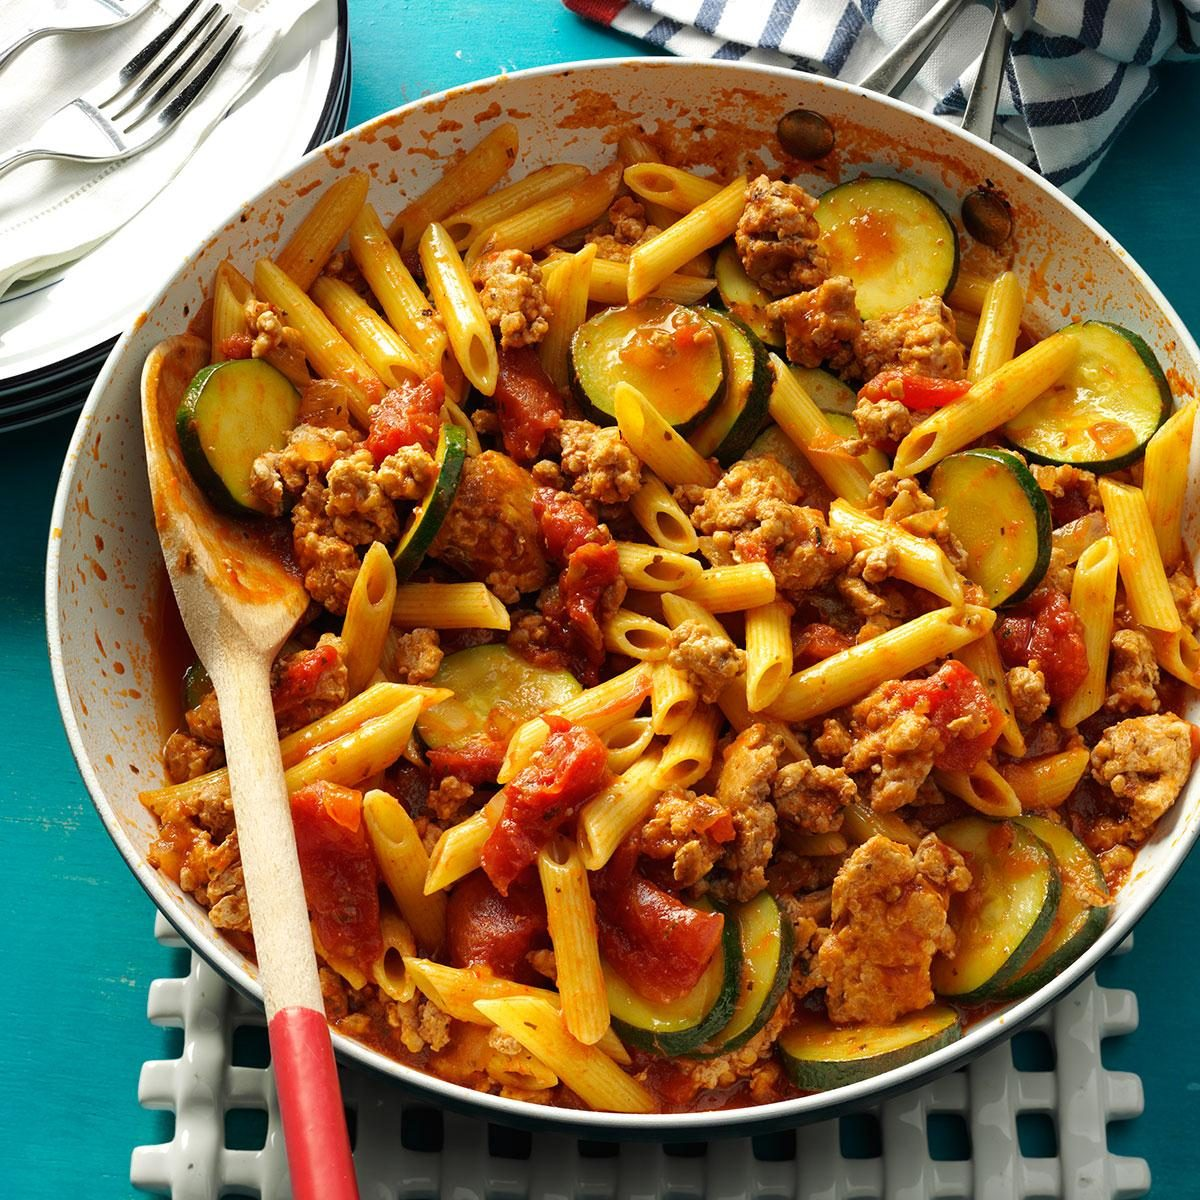 Jiffy Ground Pork Skillet Recipe | Taste of Home